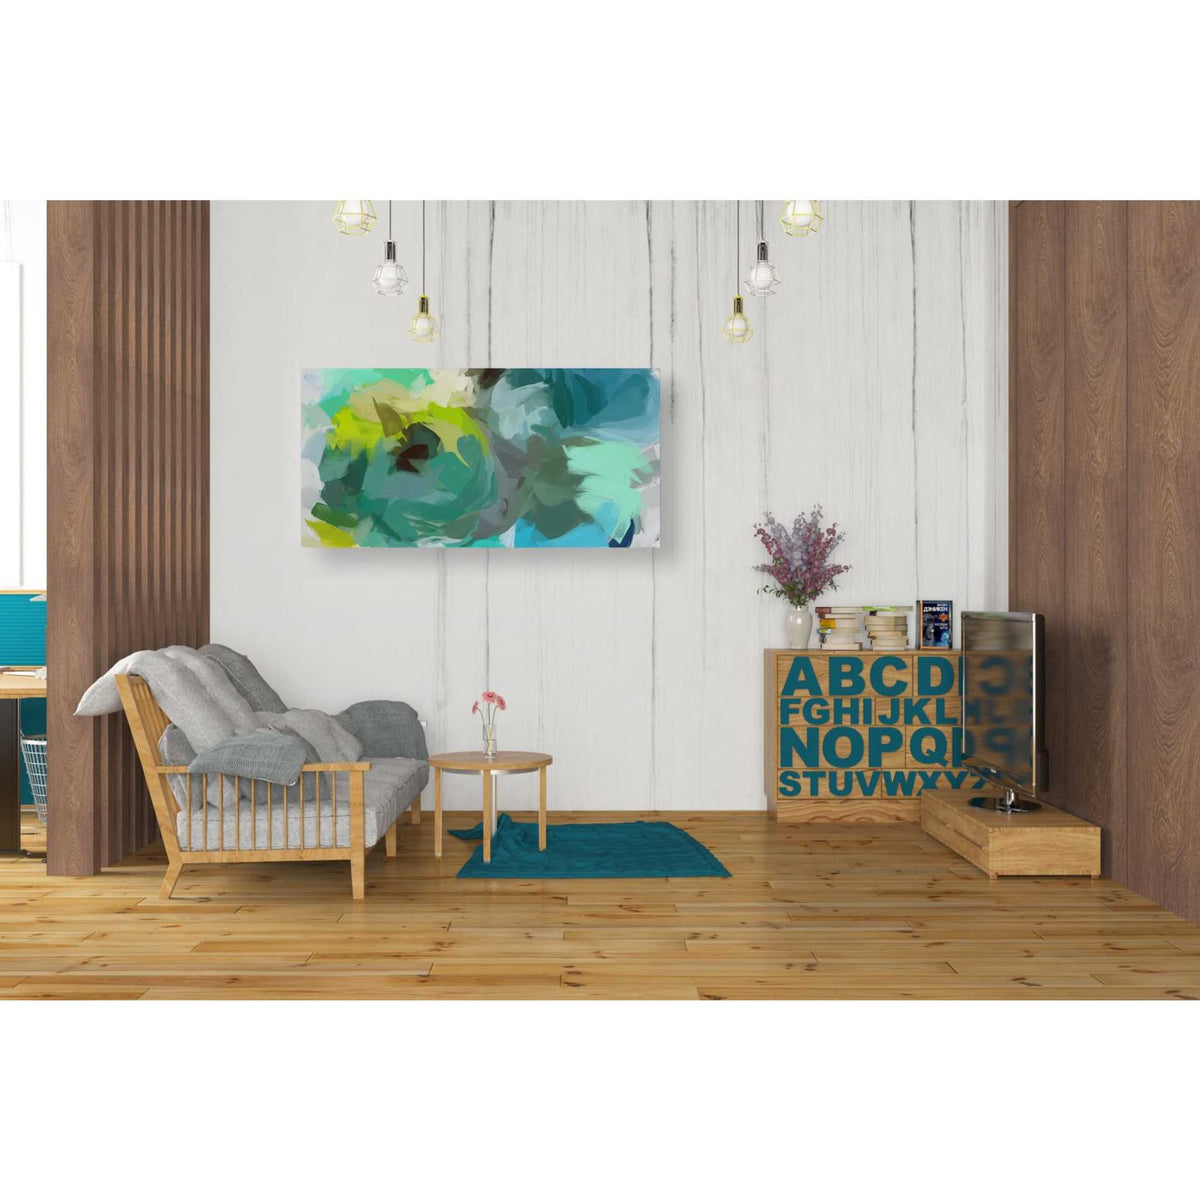 Epic Graffiti 'The Shades of Green Abstract 2' by Irena Orlov, Giclee Canvas Wall Art